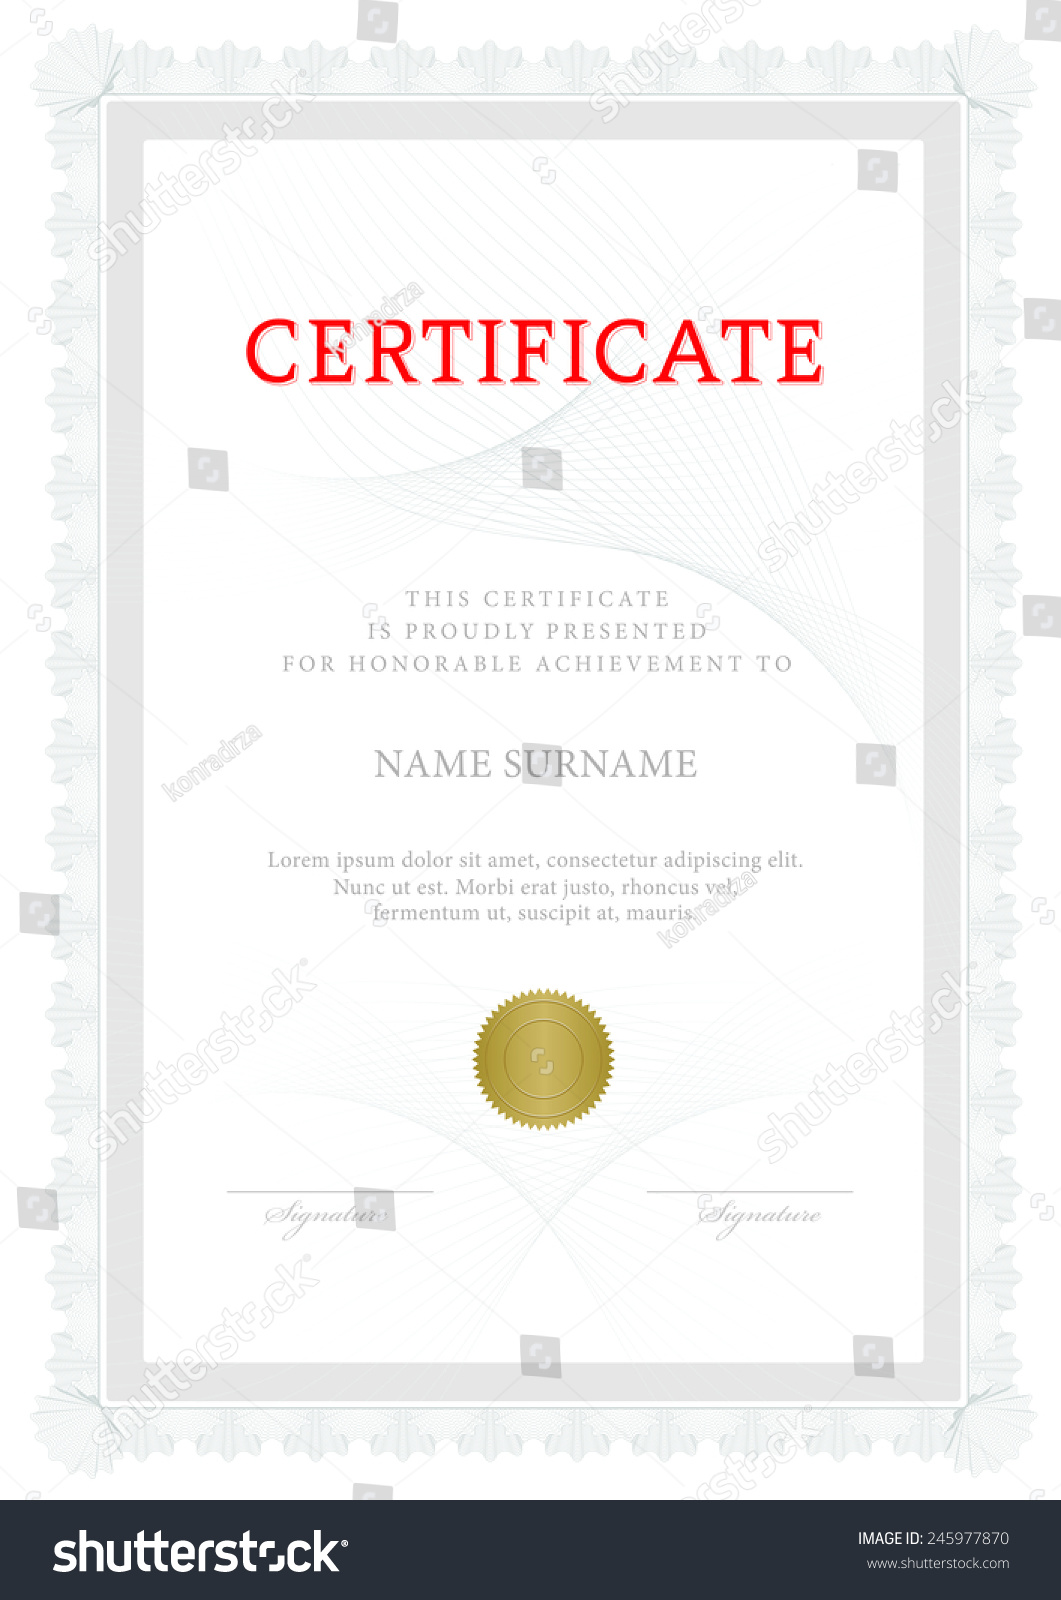 Share certificate template uk free image collections certificate stock share certificate template samples of certificate of uk share certificate template free wedding seating chart xflitez Gallery